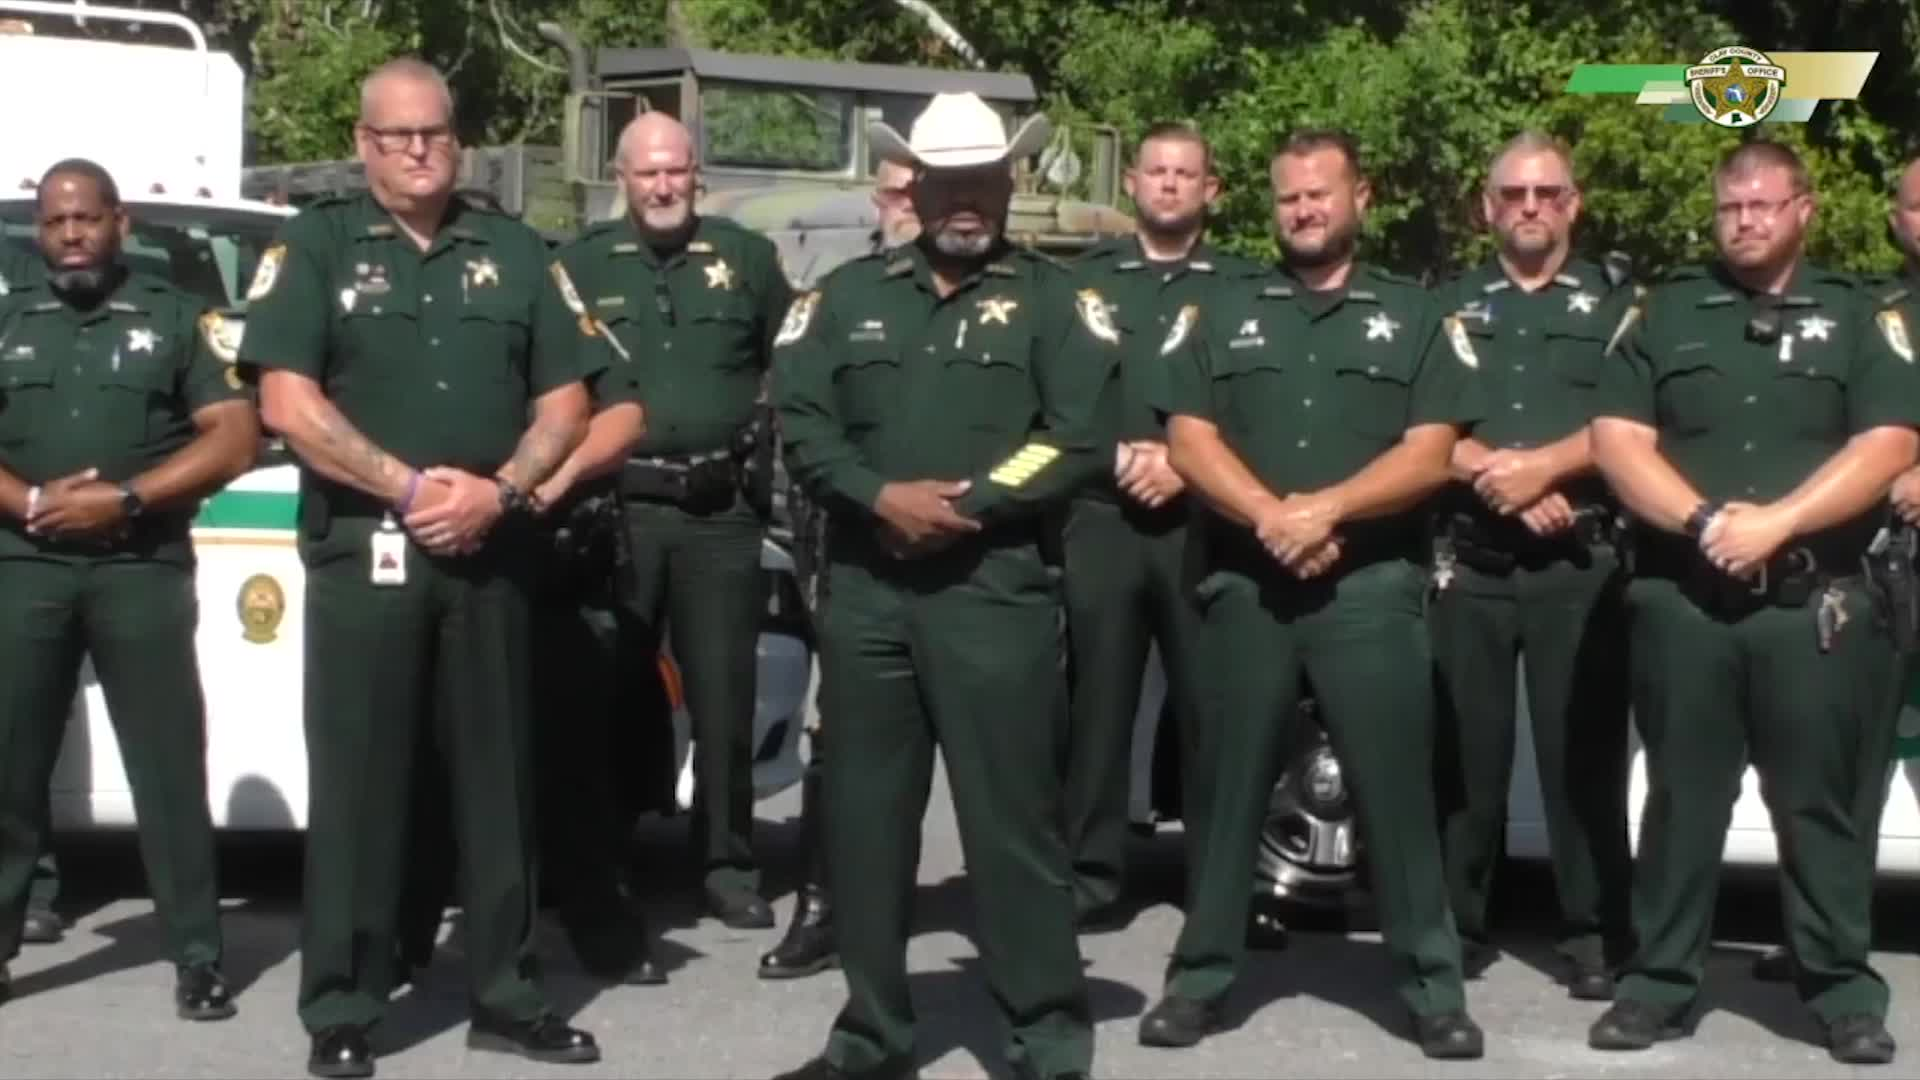 A Florida sheriff said he will deputize lawful gun owners if protests turn violent